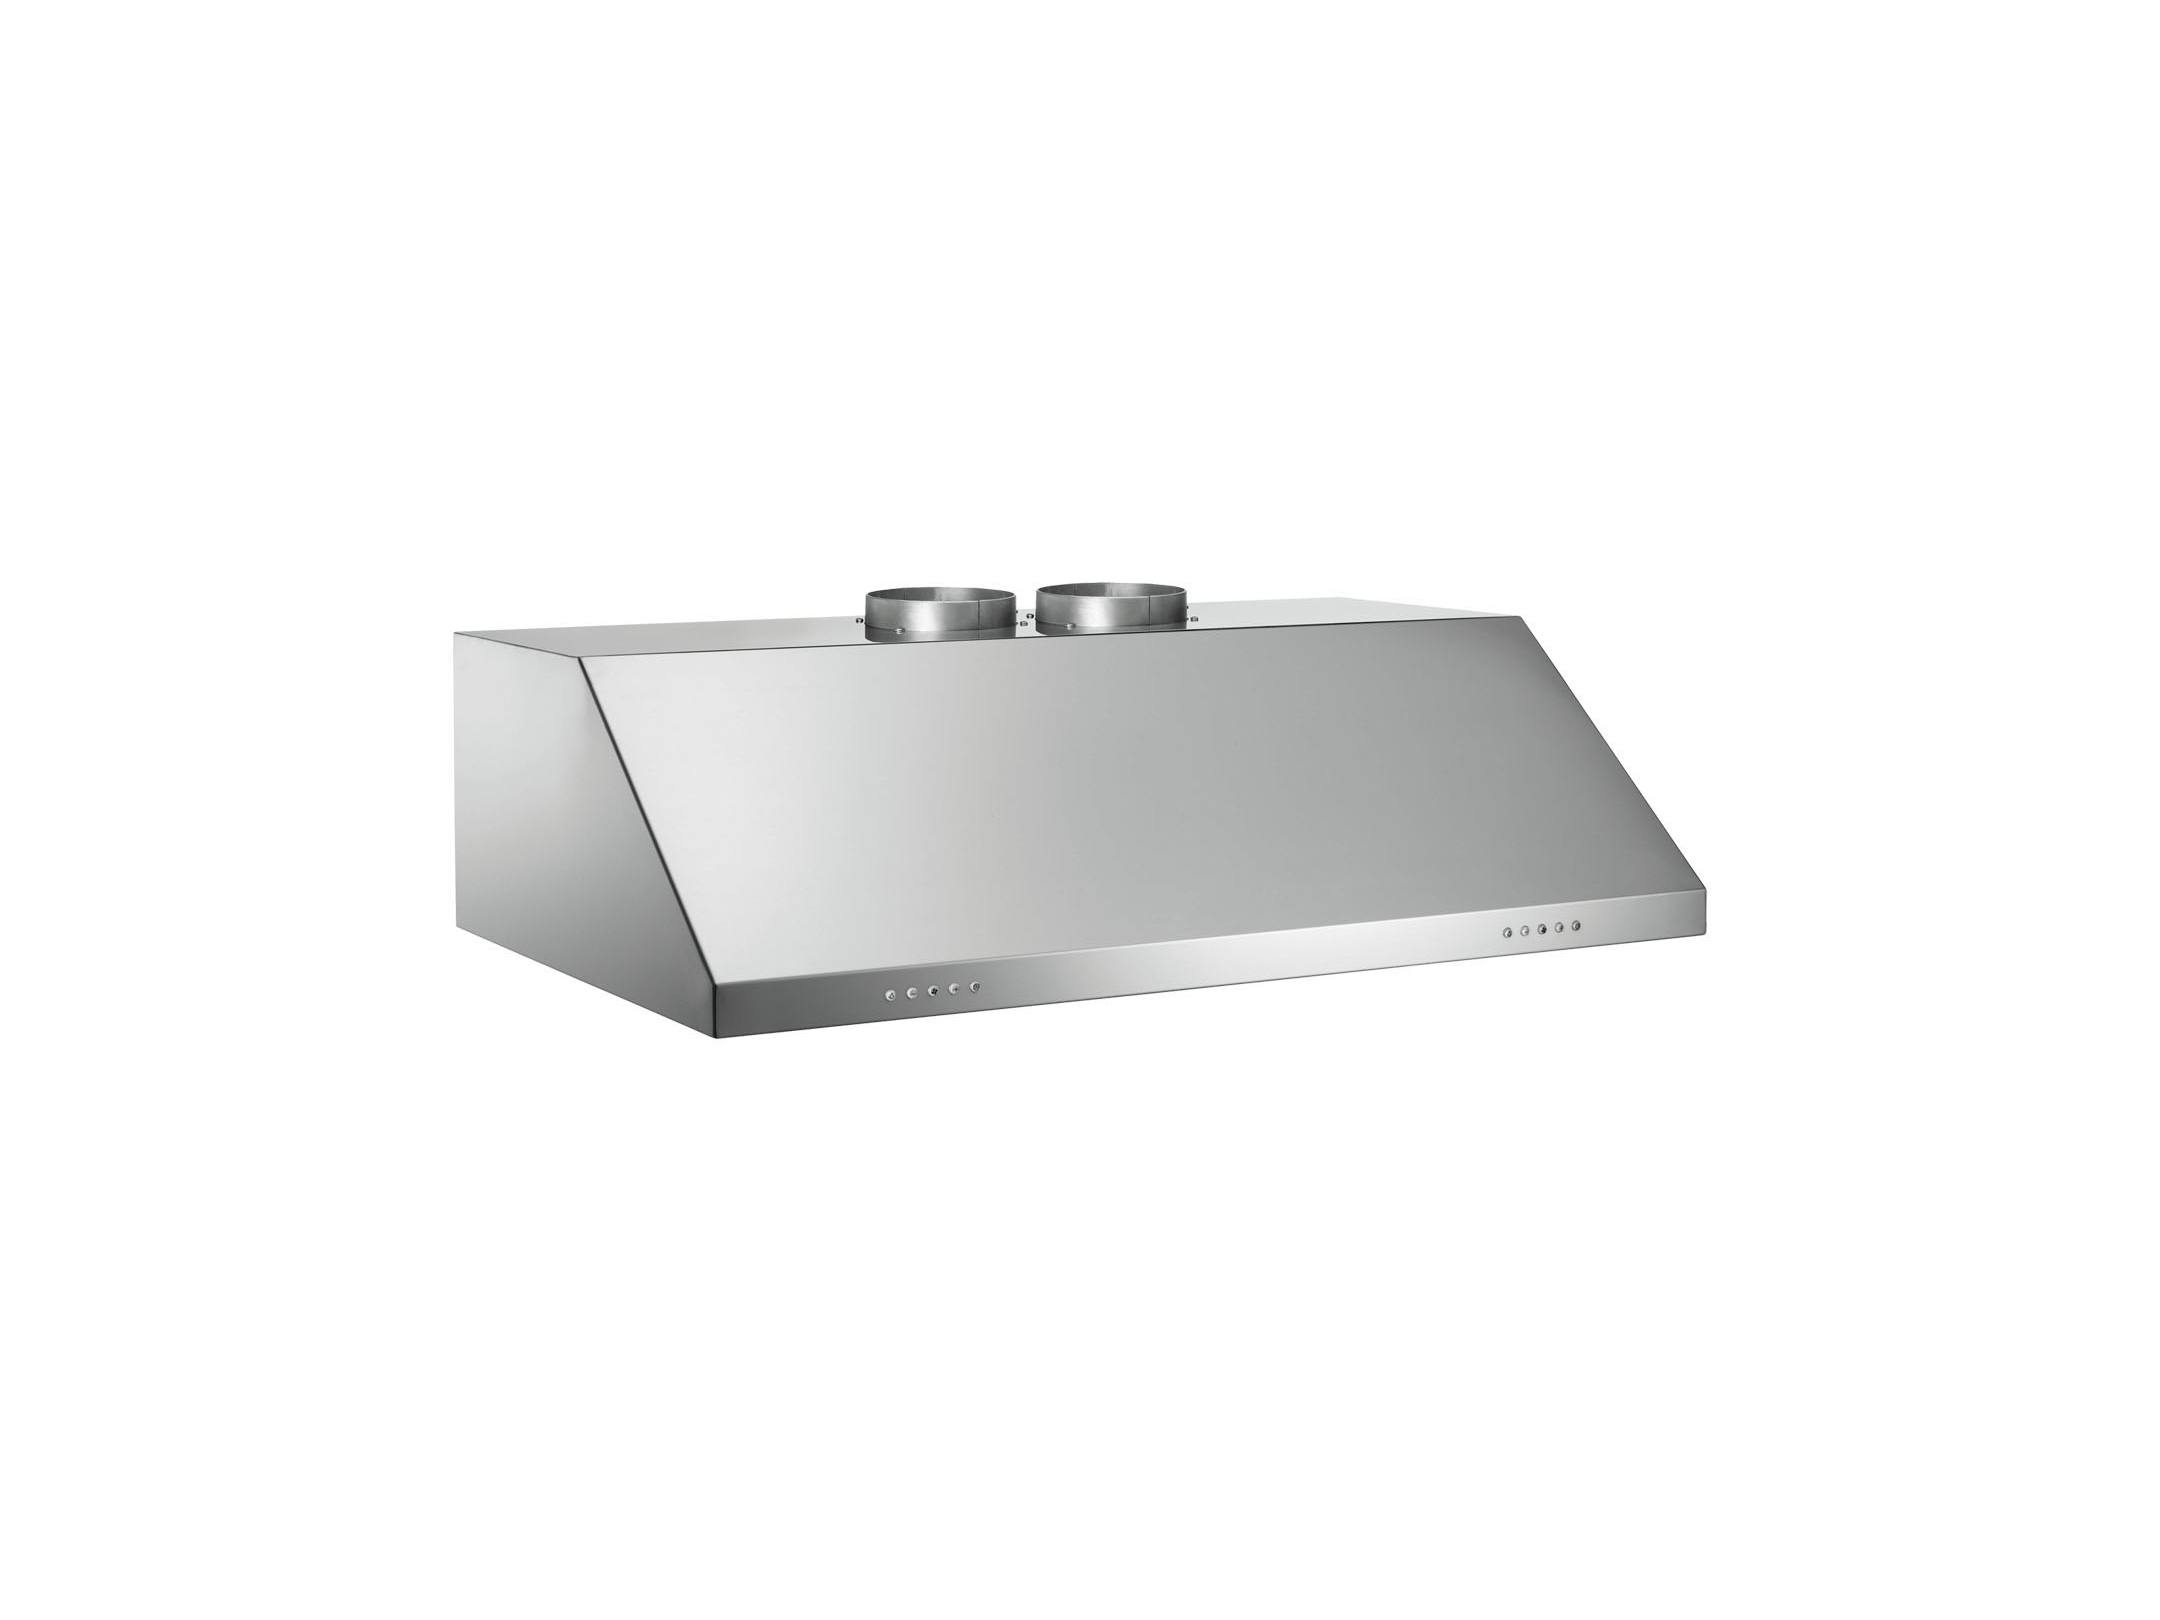 Bertazzoni Rangehood 36inch in Stainless Steel color showcased by Corbeil Electro Store